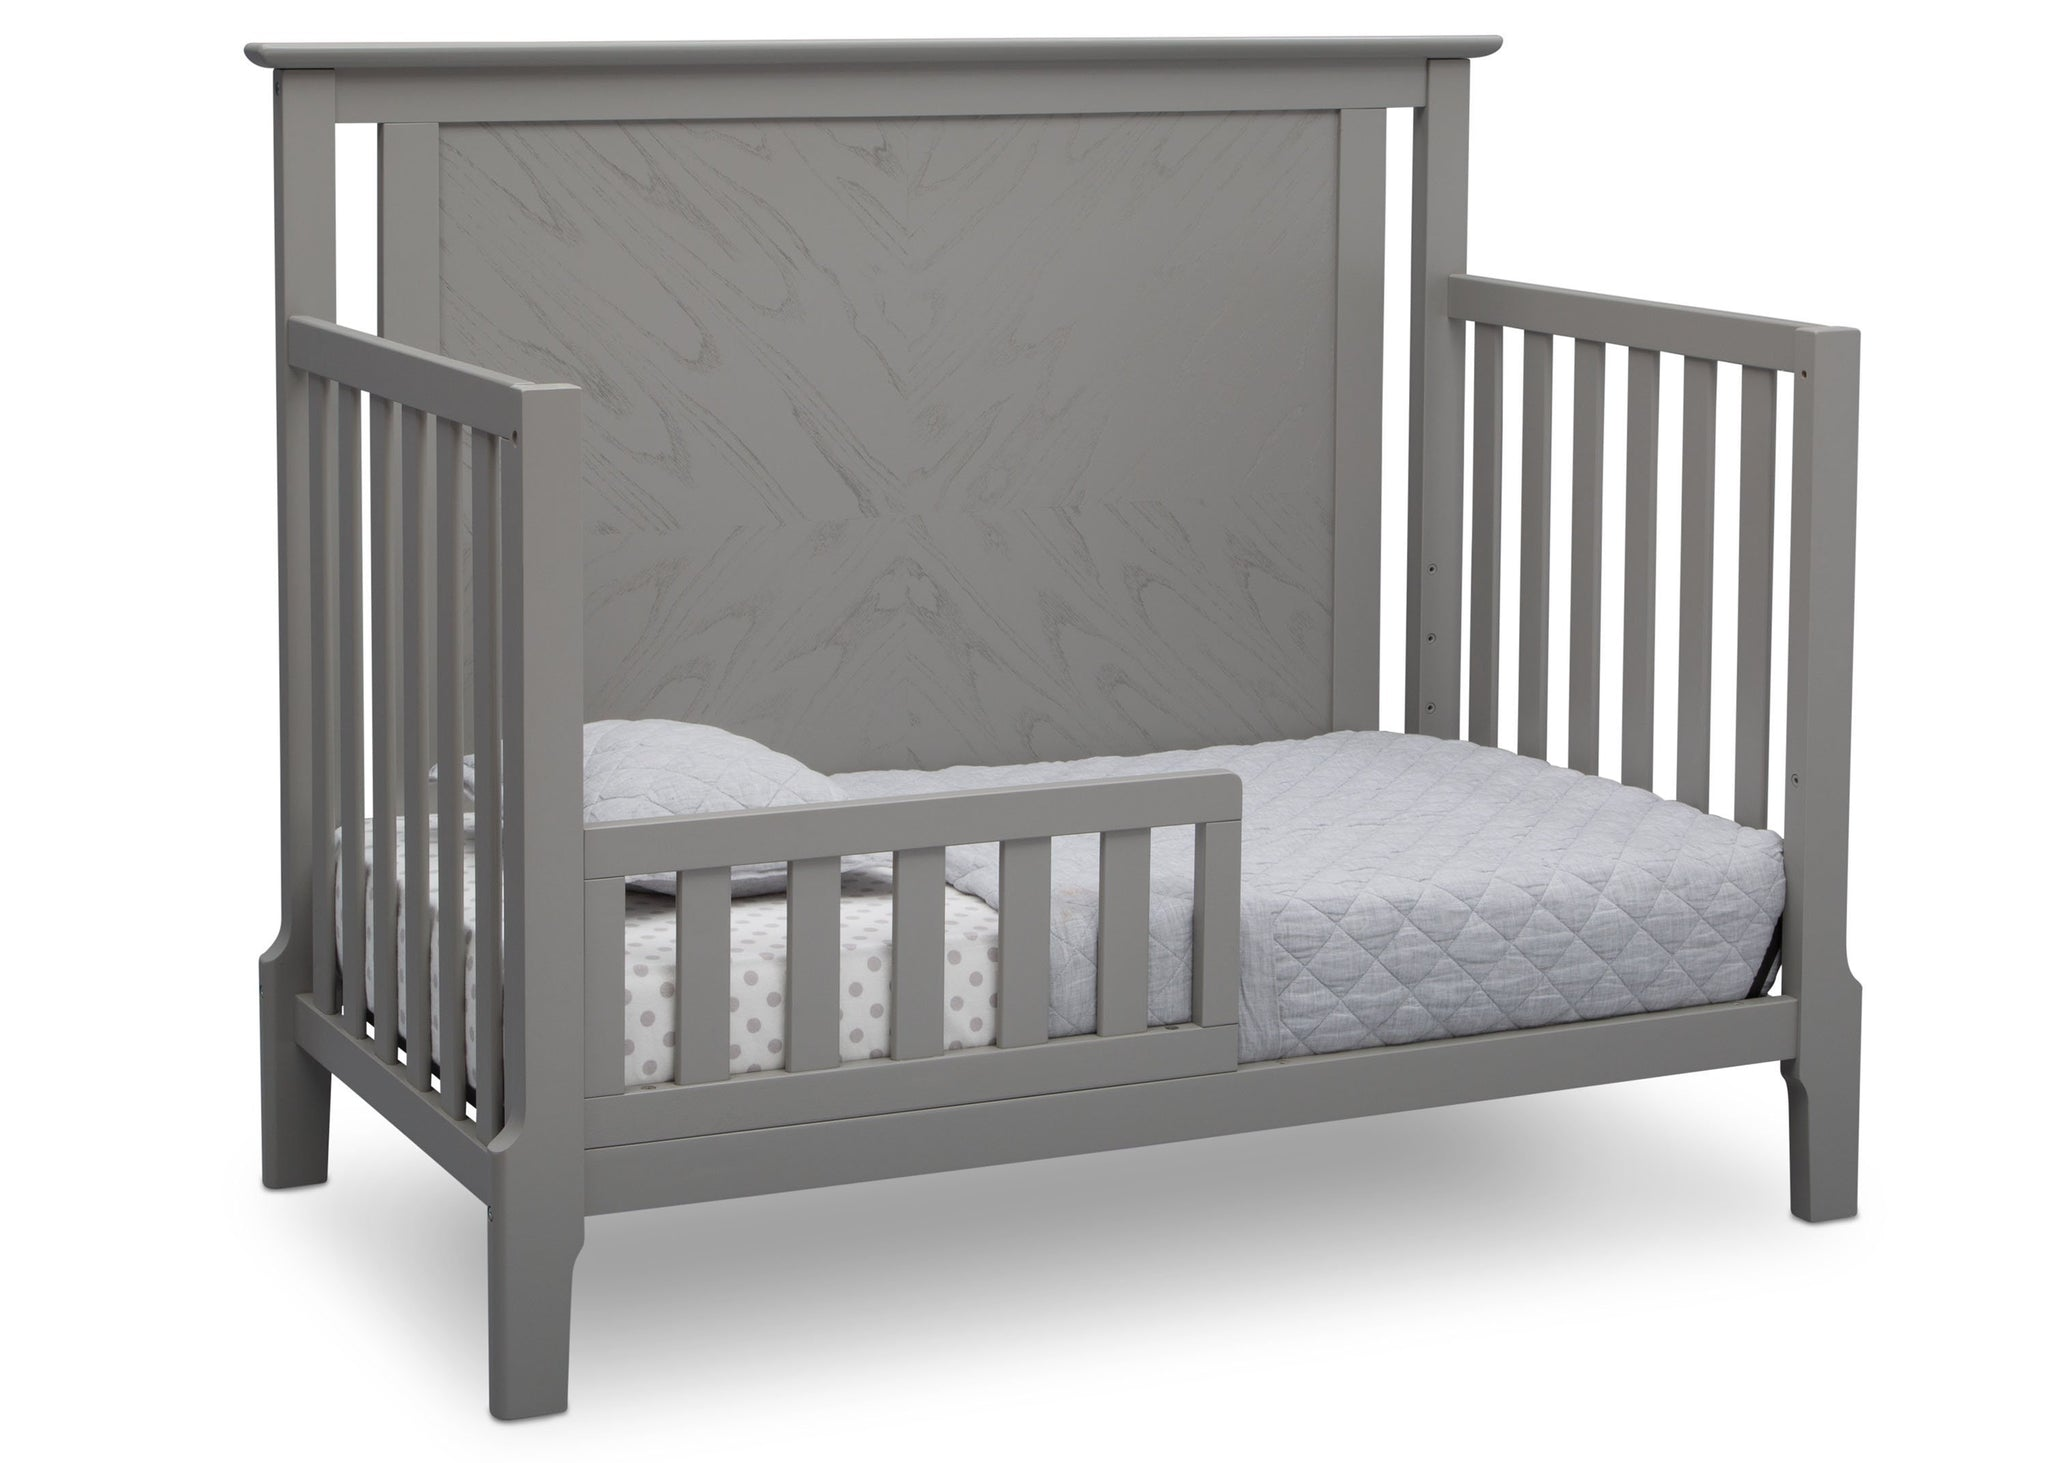 Serta Mid-Century Modern Lifestyle 4-in-1 Crib Grey (026) Toddler Bed a4a